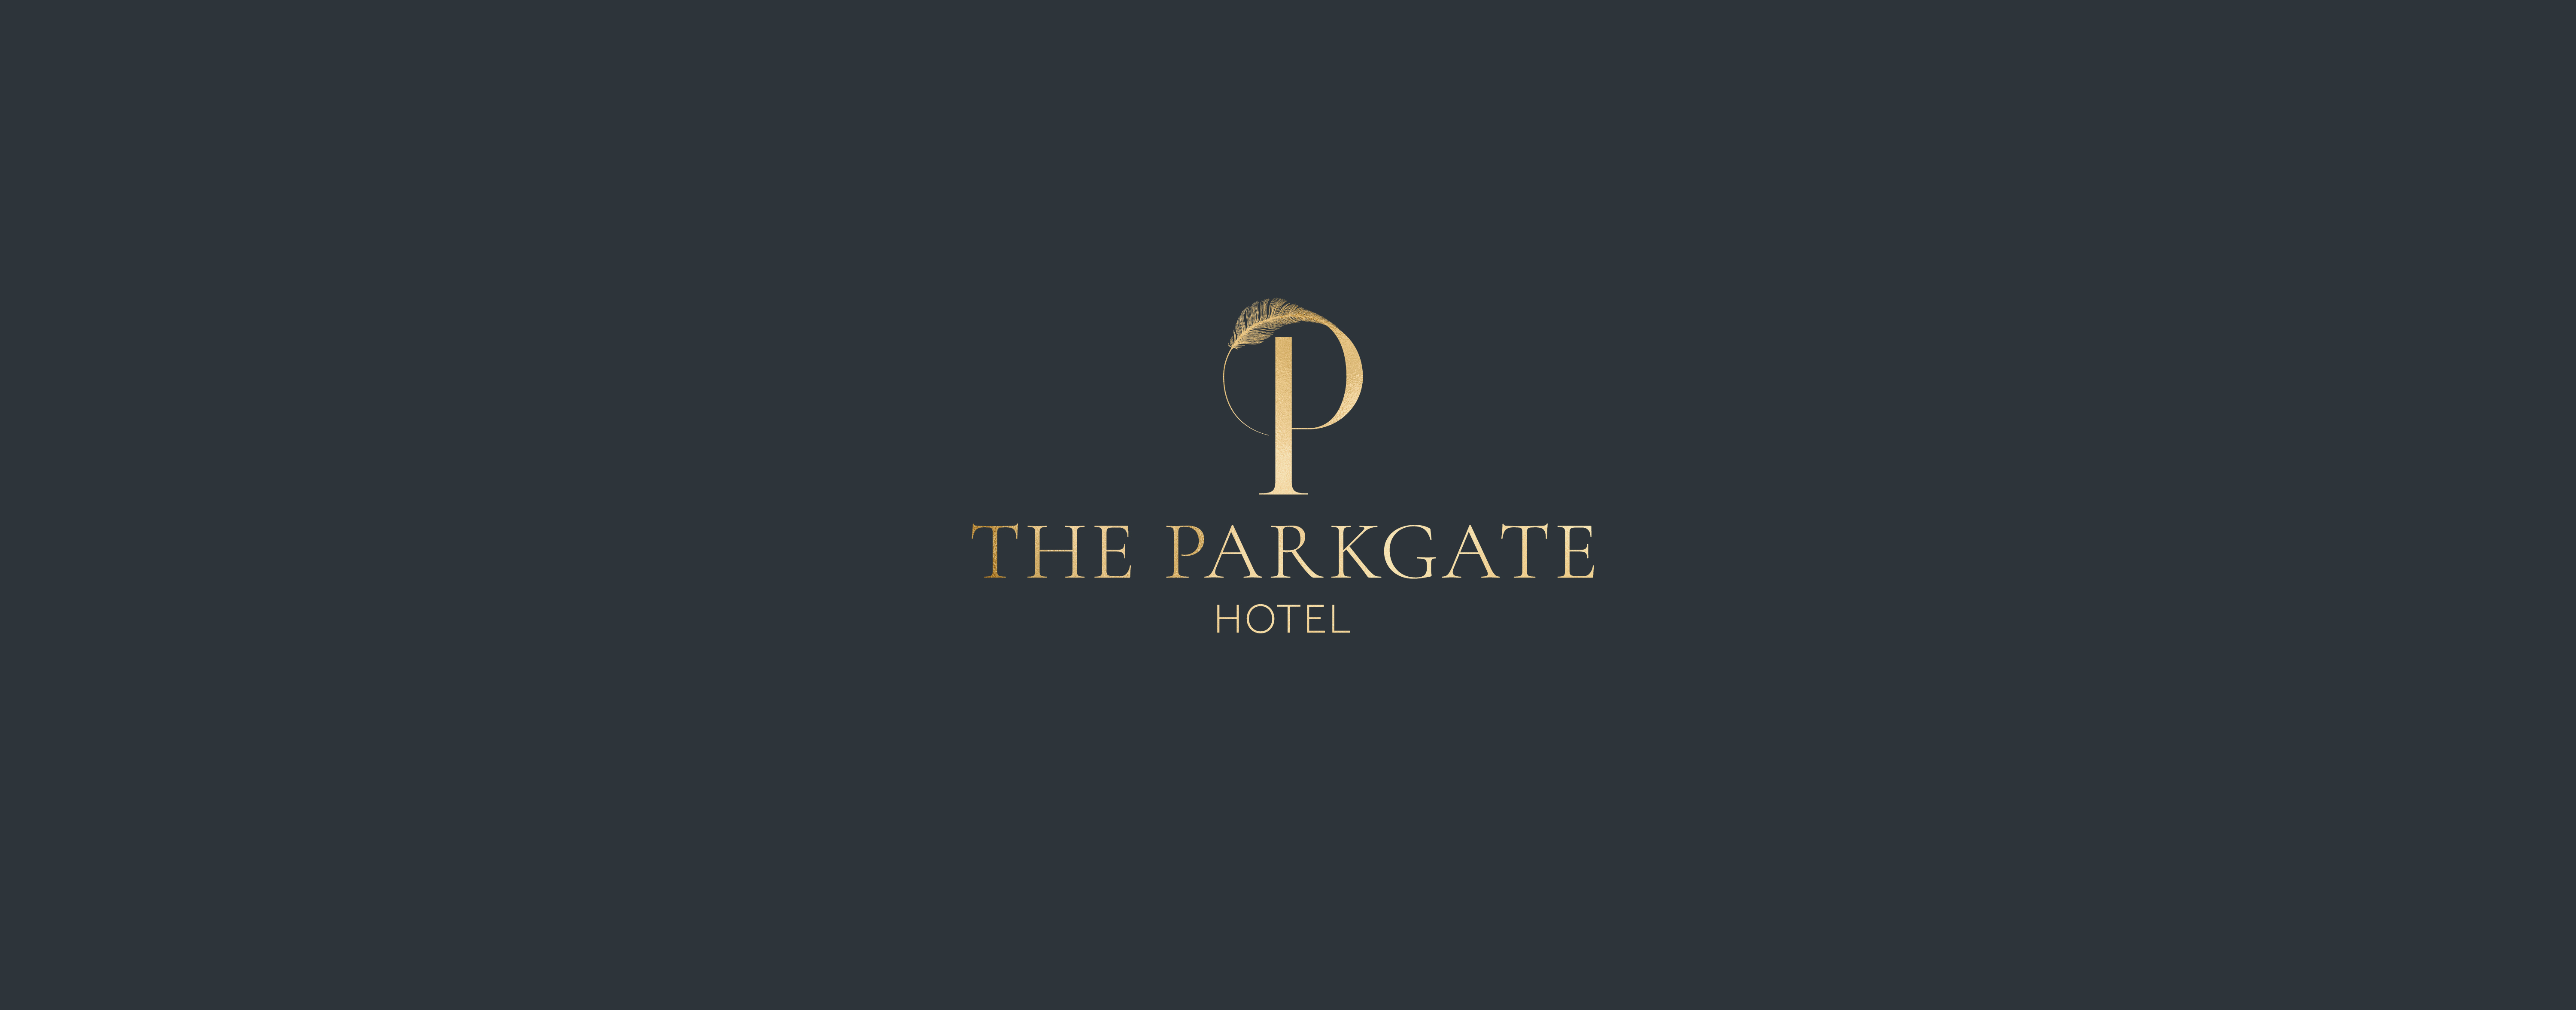 The Parkgate Hotel Banner